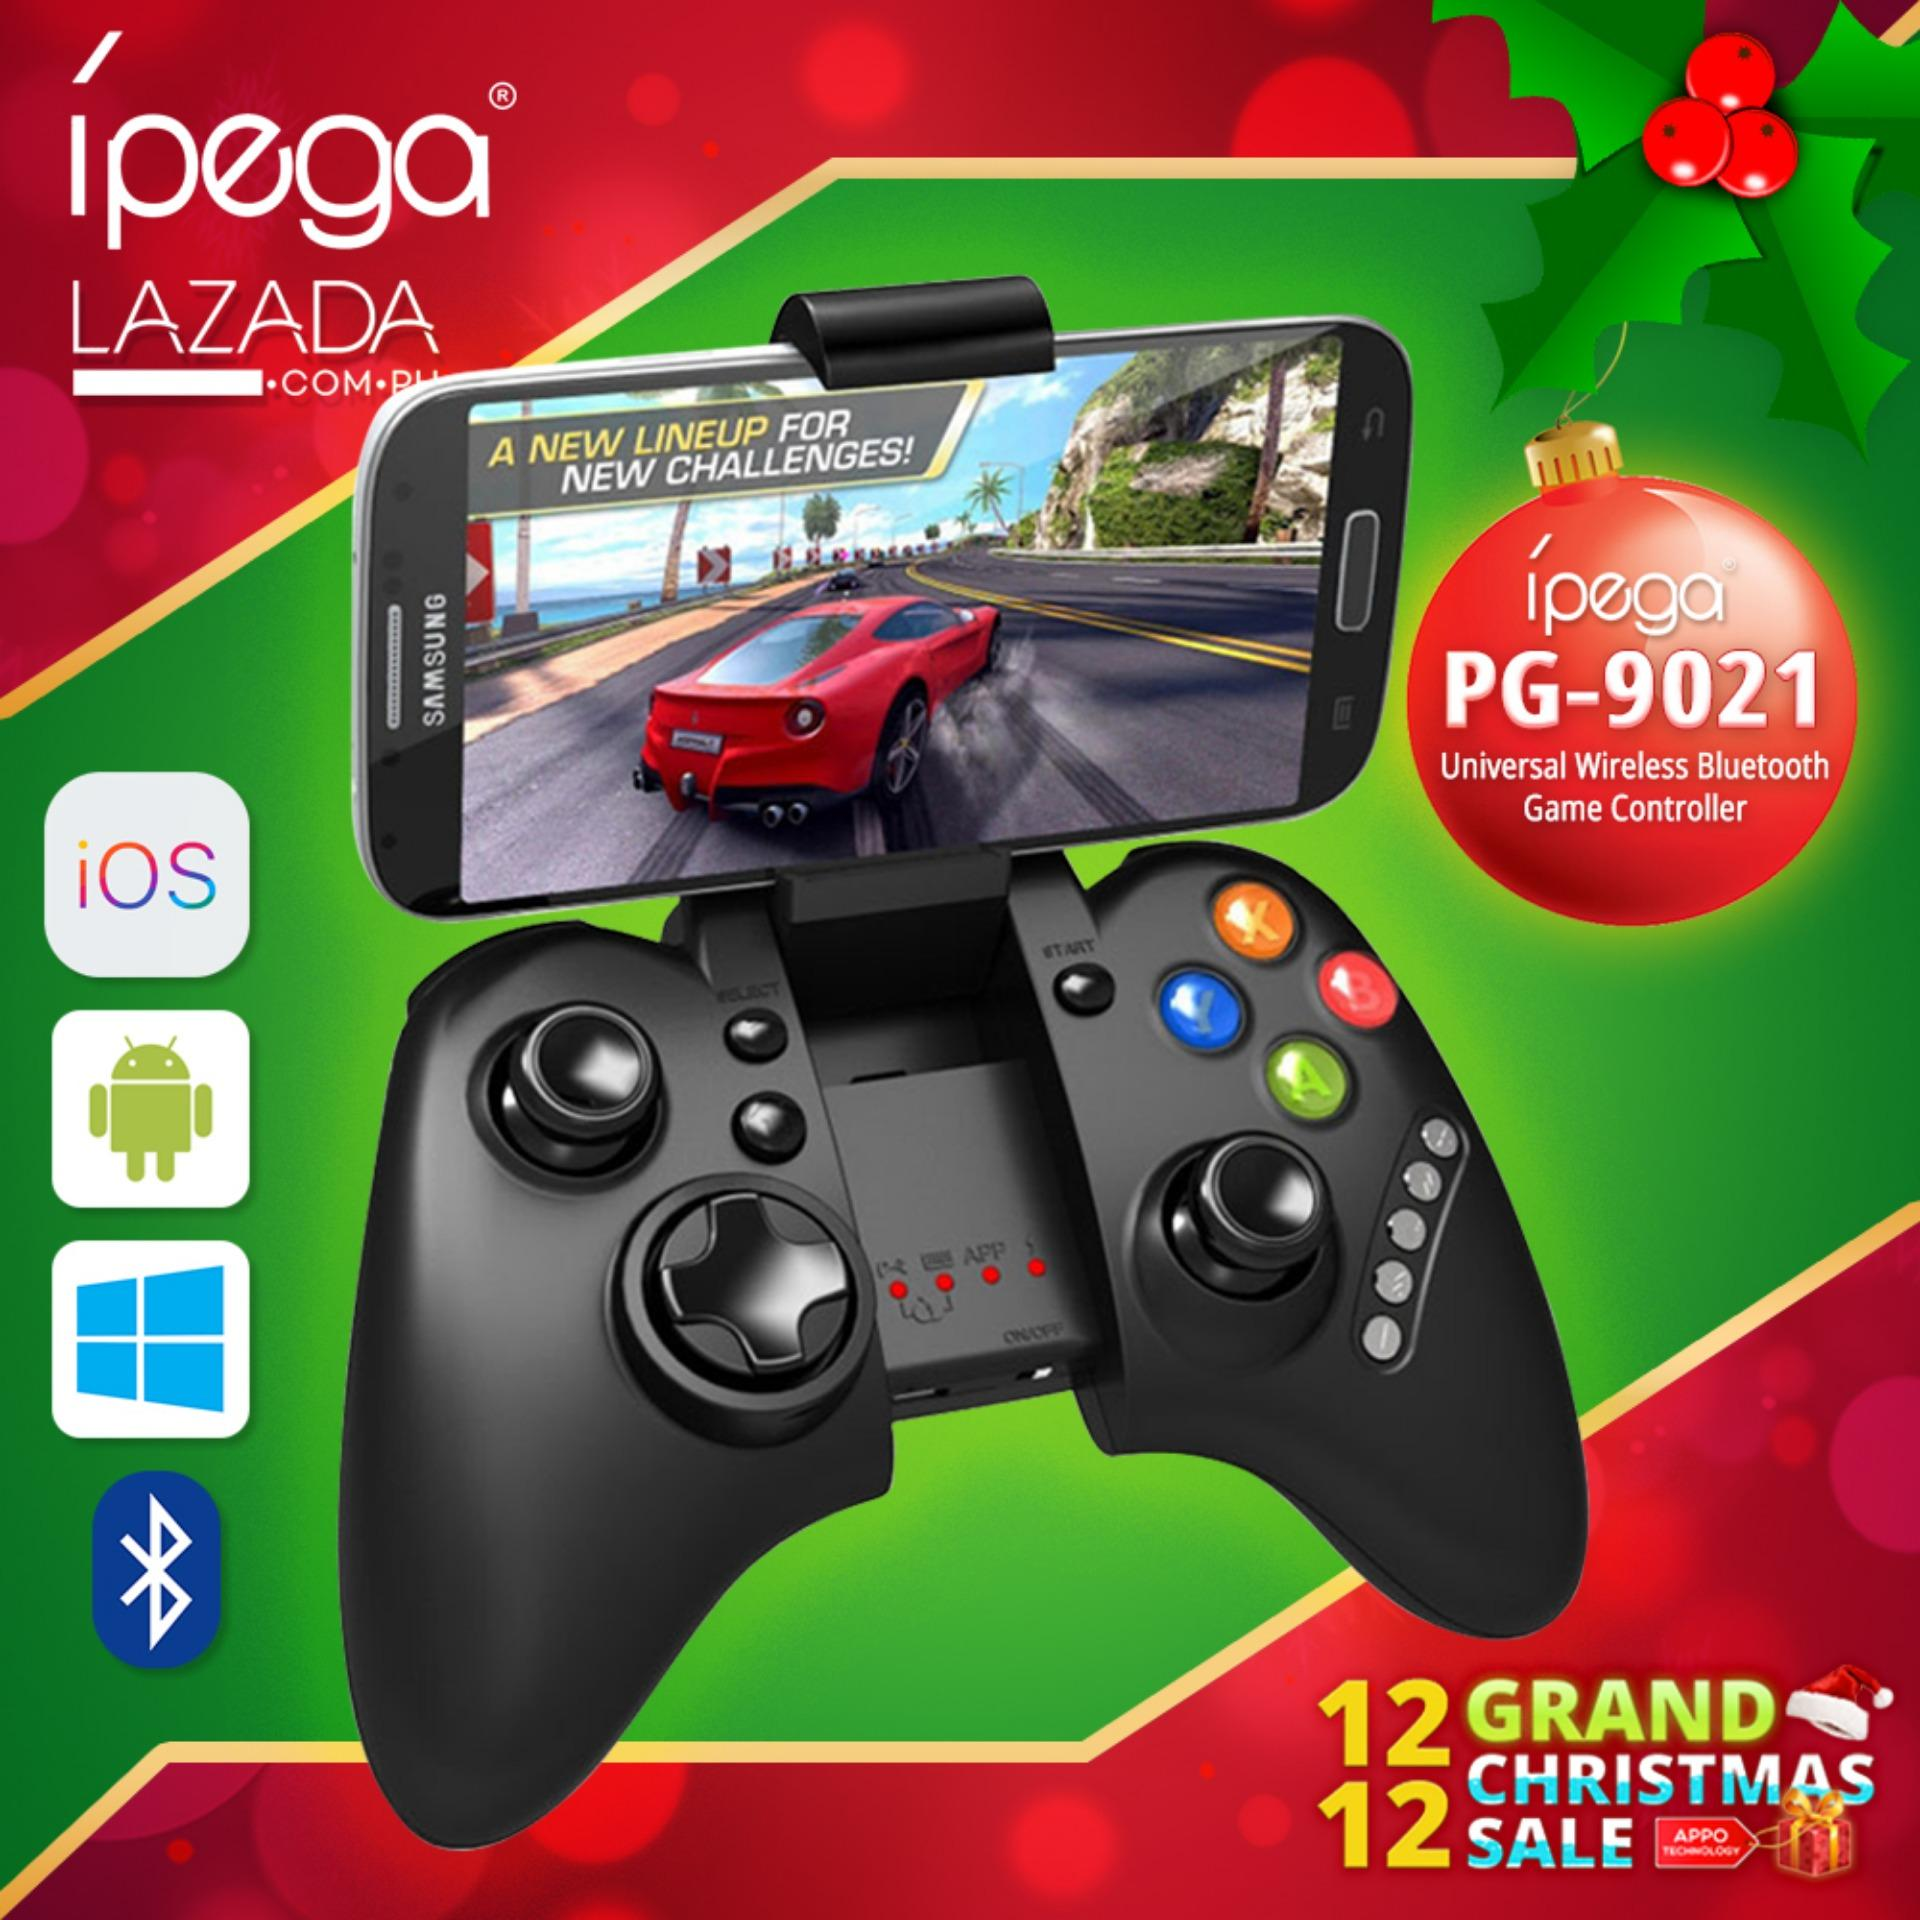 Ps Controller For Sale Dual Shock Prices Brands Stick Android Ipega Mobile Pg 9021 Universal Wireless Bluetooth Game With Bracket Ios